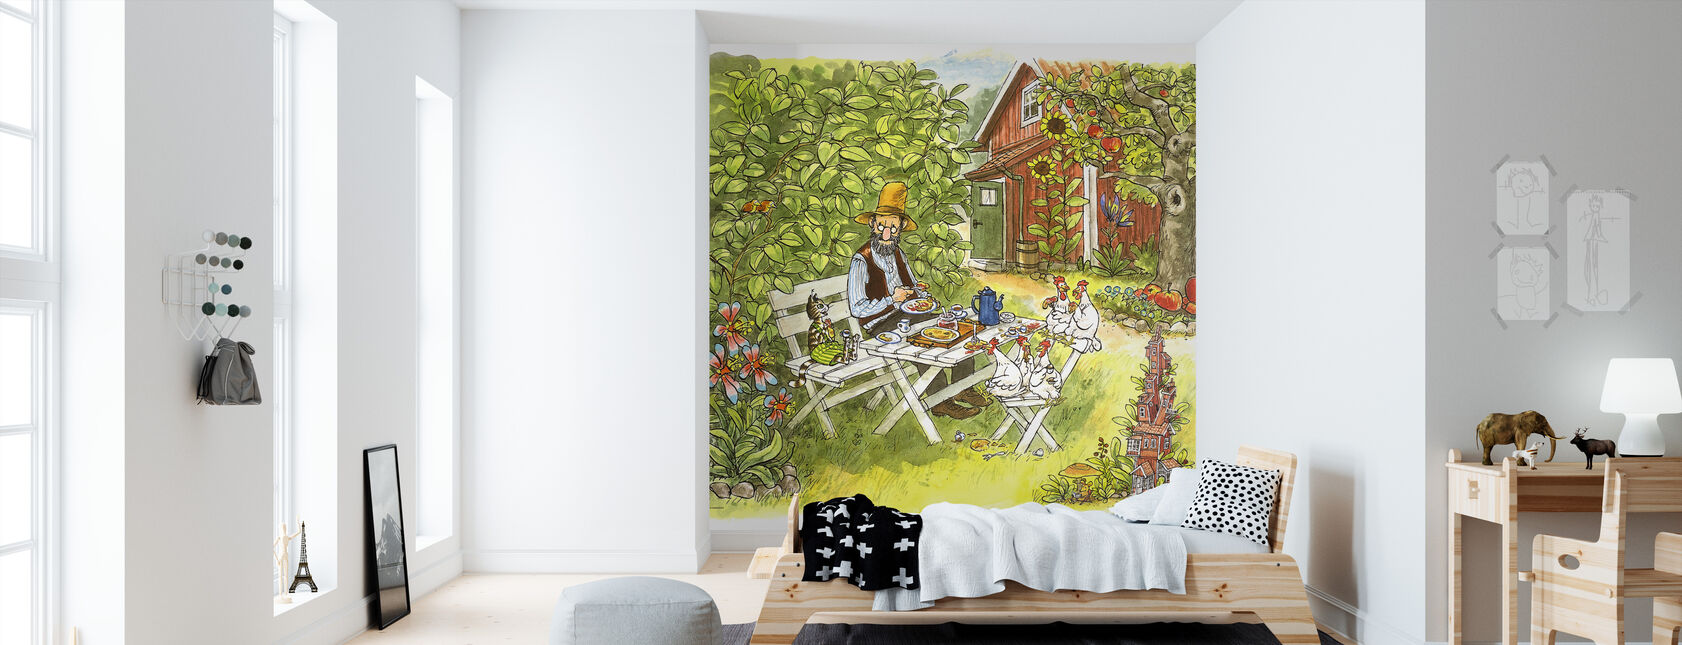 Pettson and Findus - Pancake lunch in the garden - Wallpaper - Kids Room